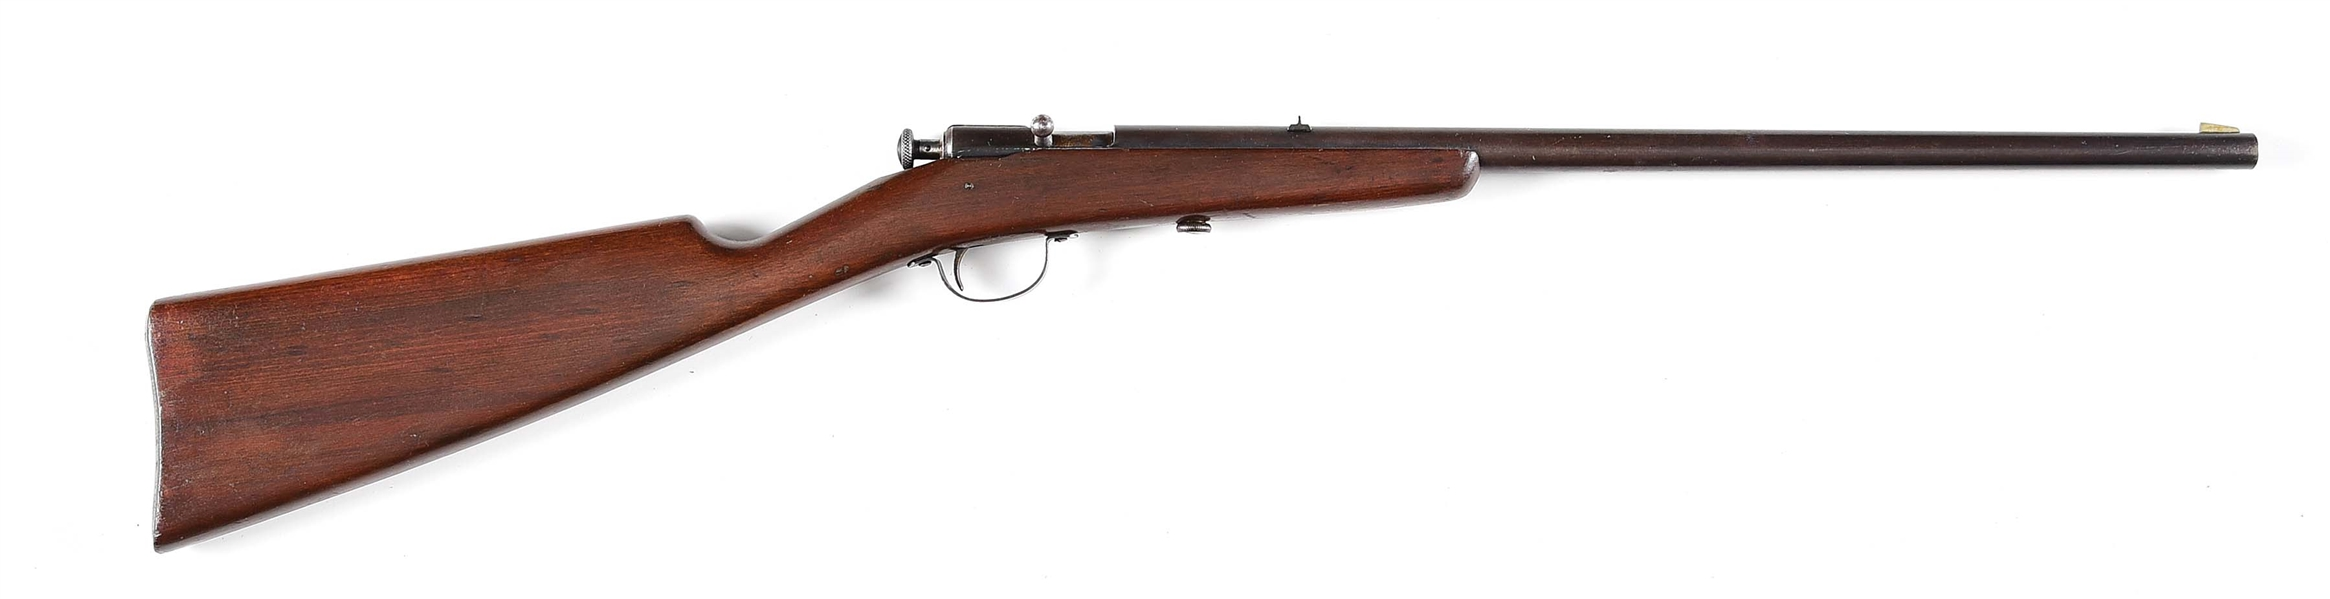 (A) WINCHESTER MODEL 58 .22 LR BOLT ACTION RIFLE.